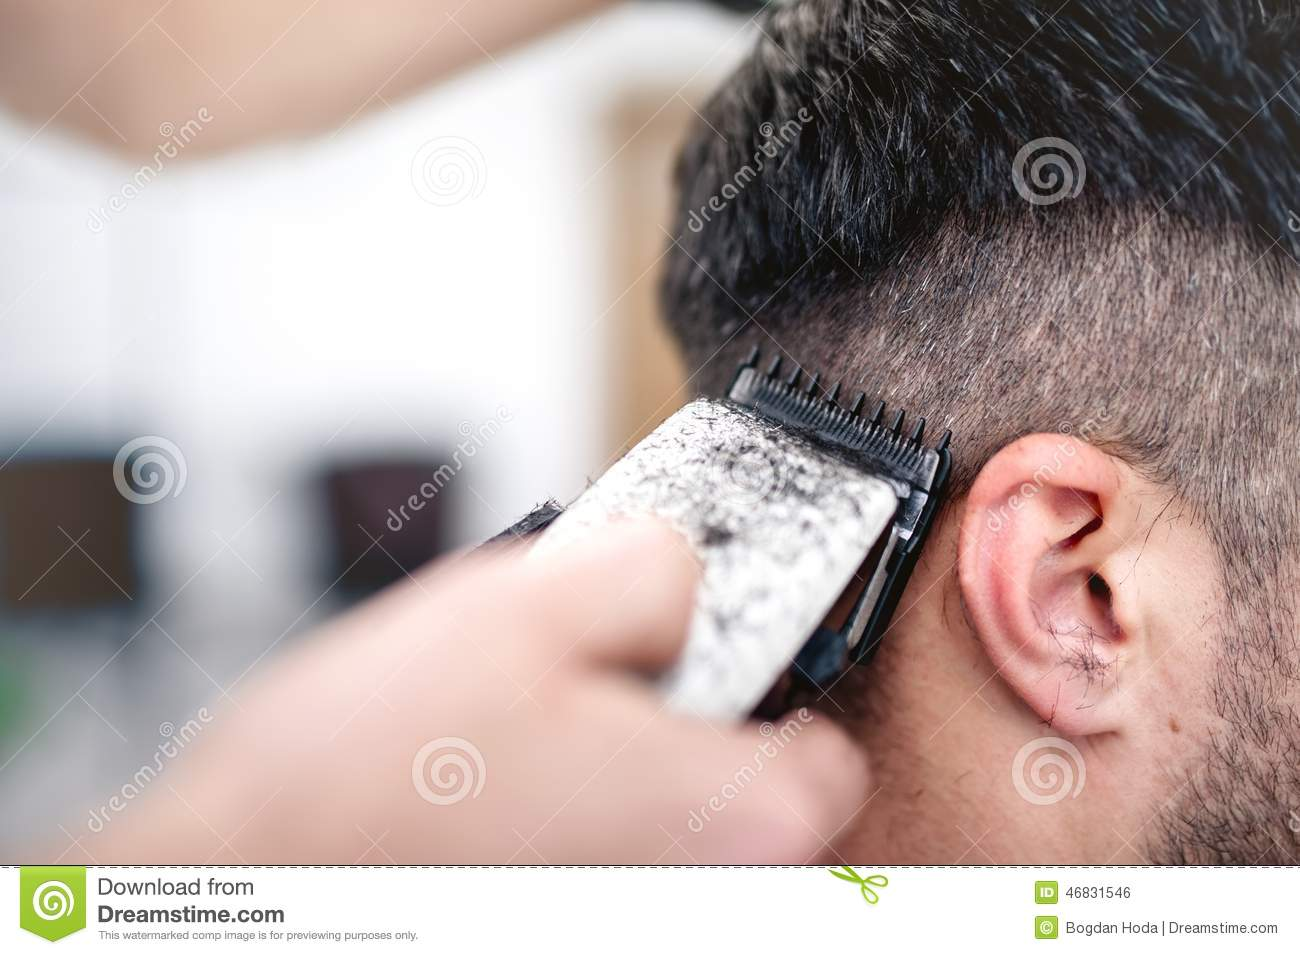 Men s hairstyling and haircutting with hair clipper in a barber